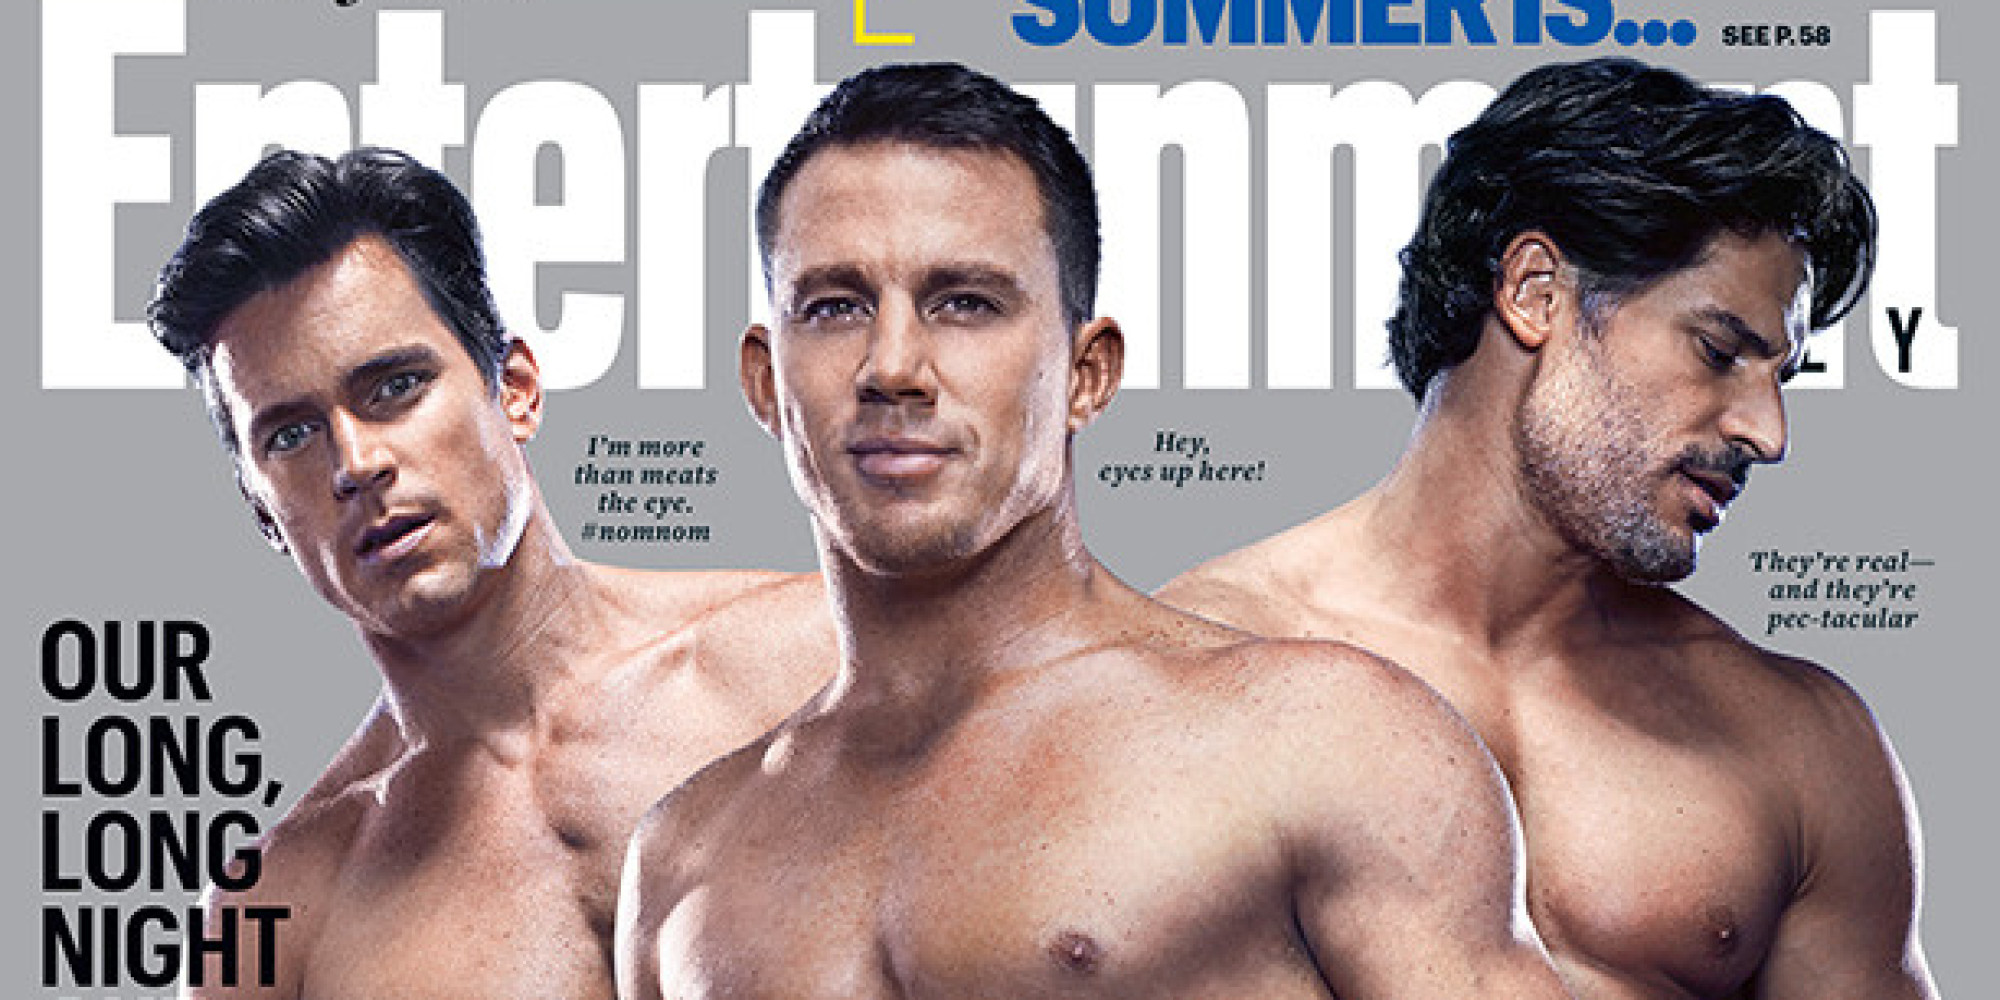 The Men Of  Magic Mike XXL  Show Off Their Ridiculous Abs On     The Men Of  Magic Mike XXL  Show Off Their Ridiculous Abs On Entertainment  Weekly Cover   HuffPost